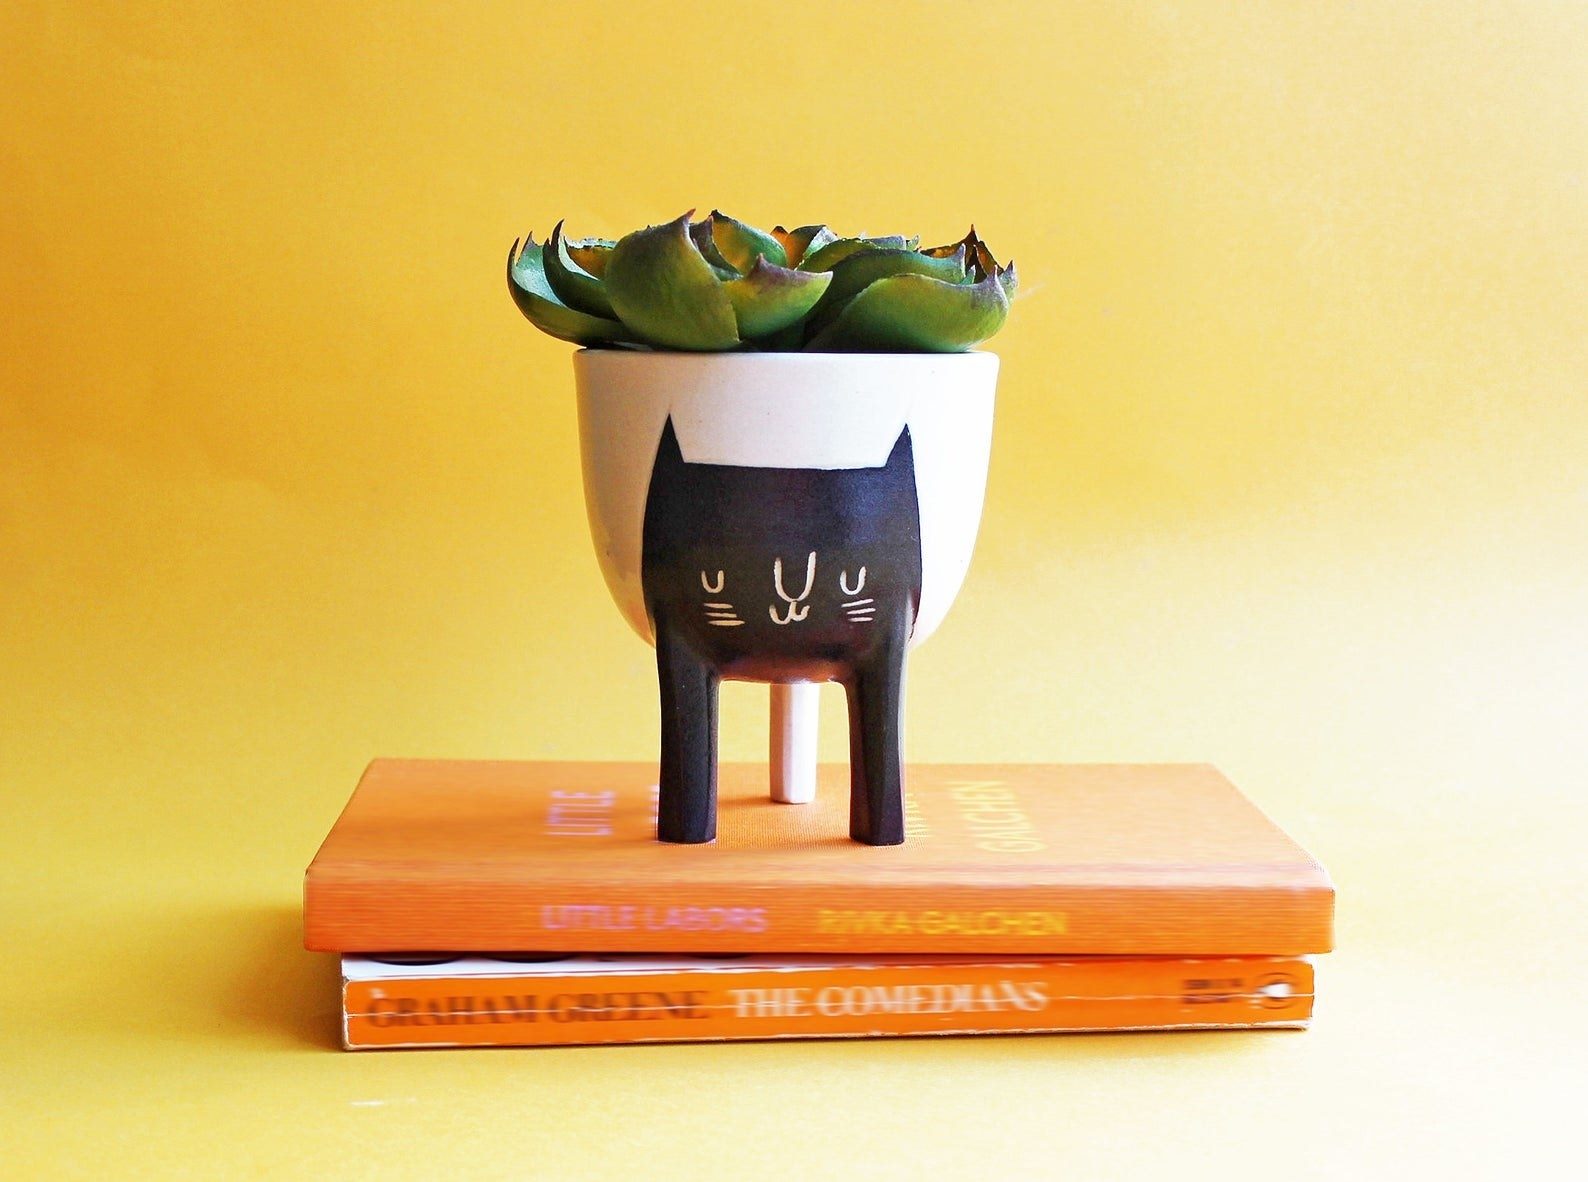 A round white planter with a cat face painted on and two front legs painted to look like the cat's legs and one back leg